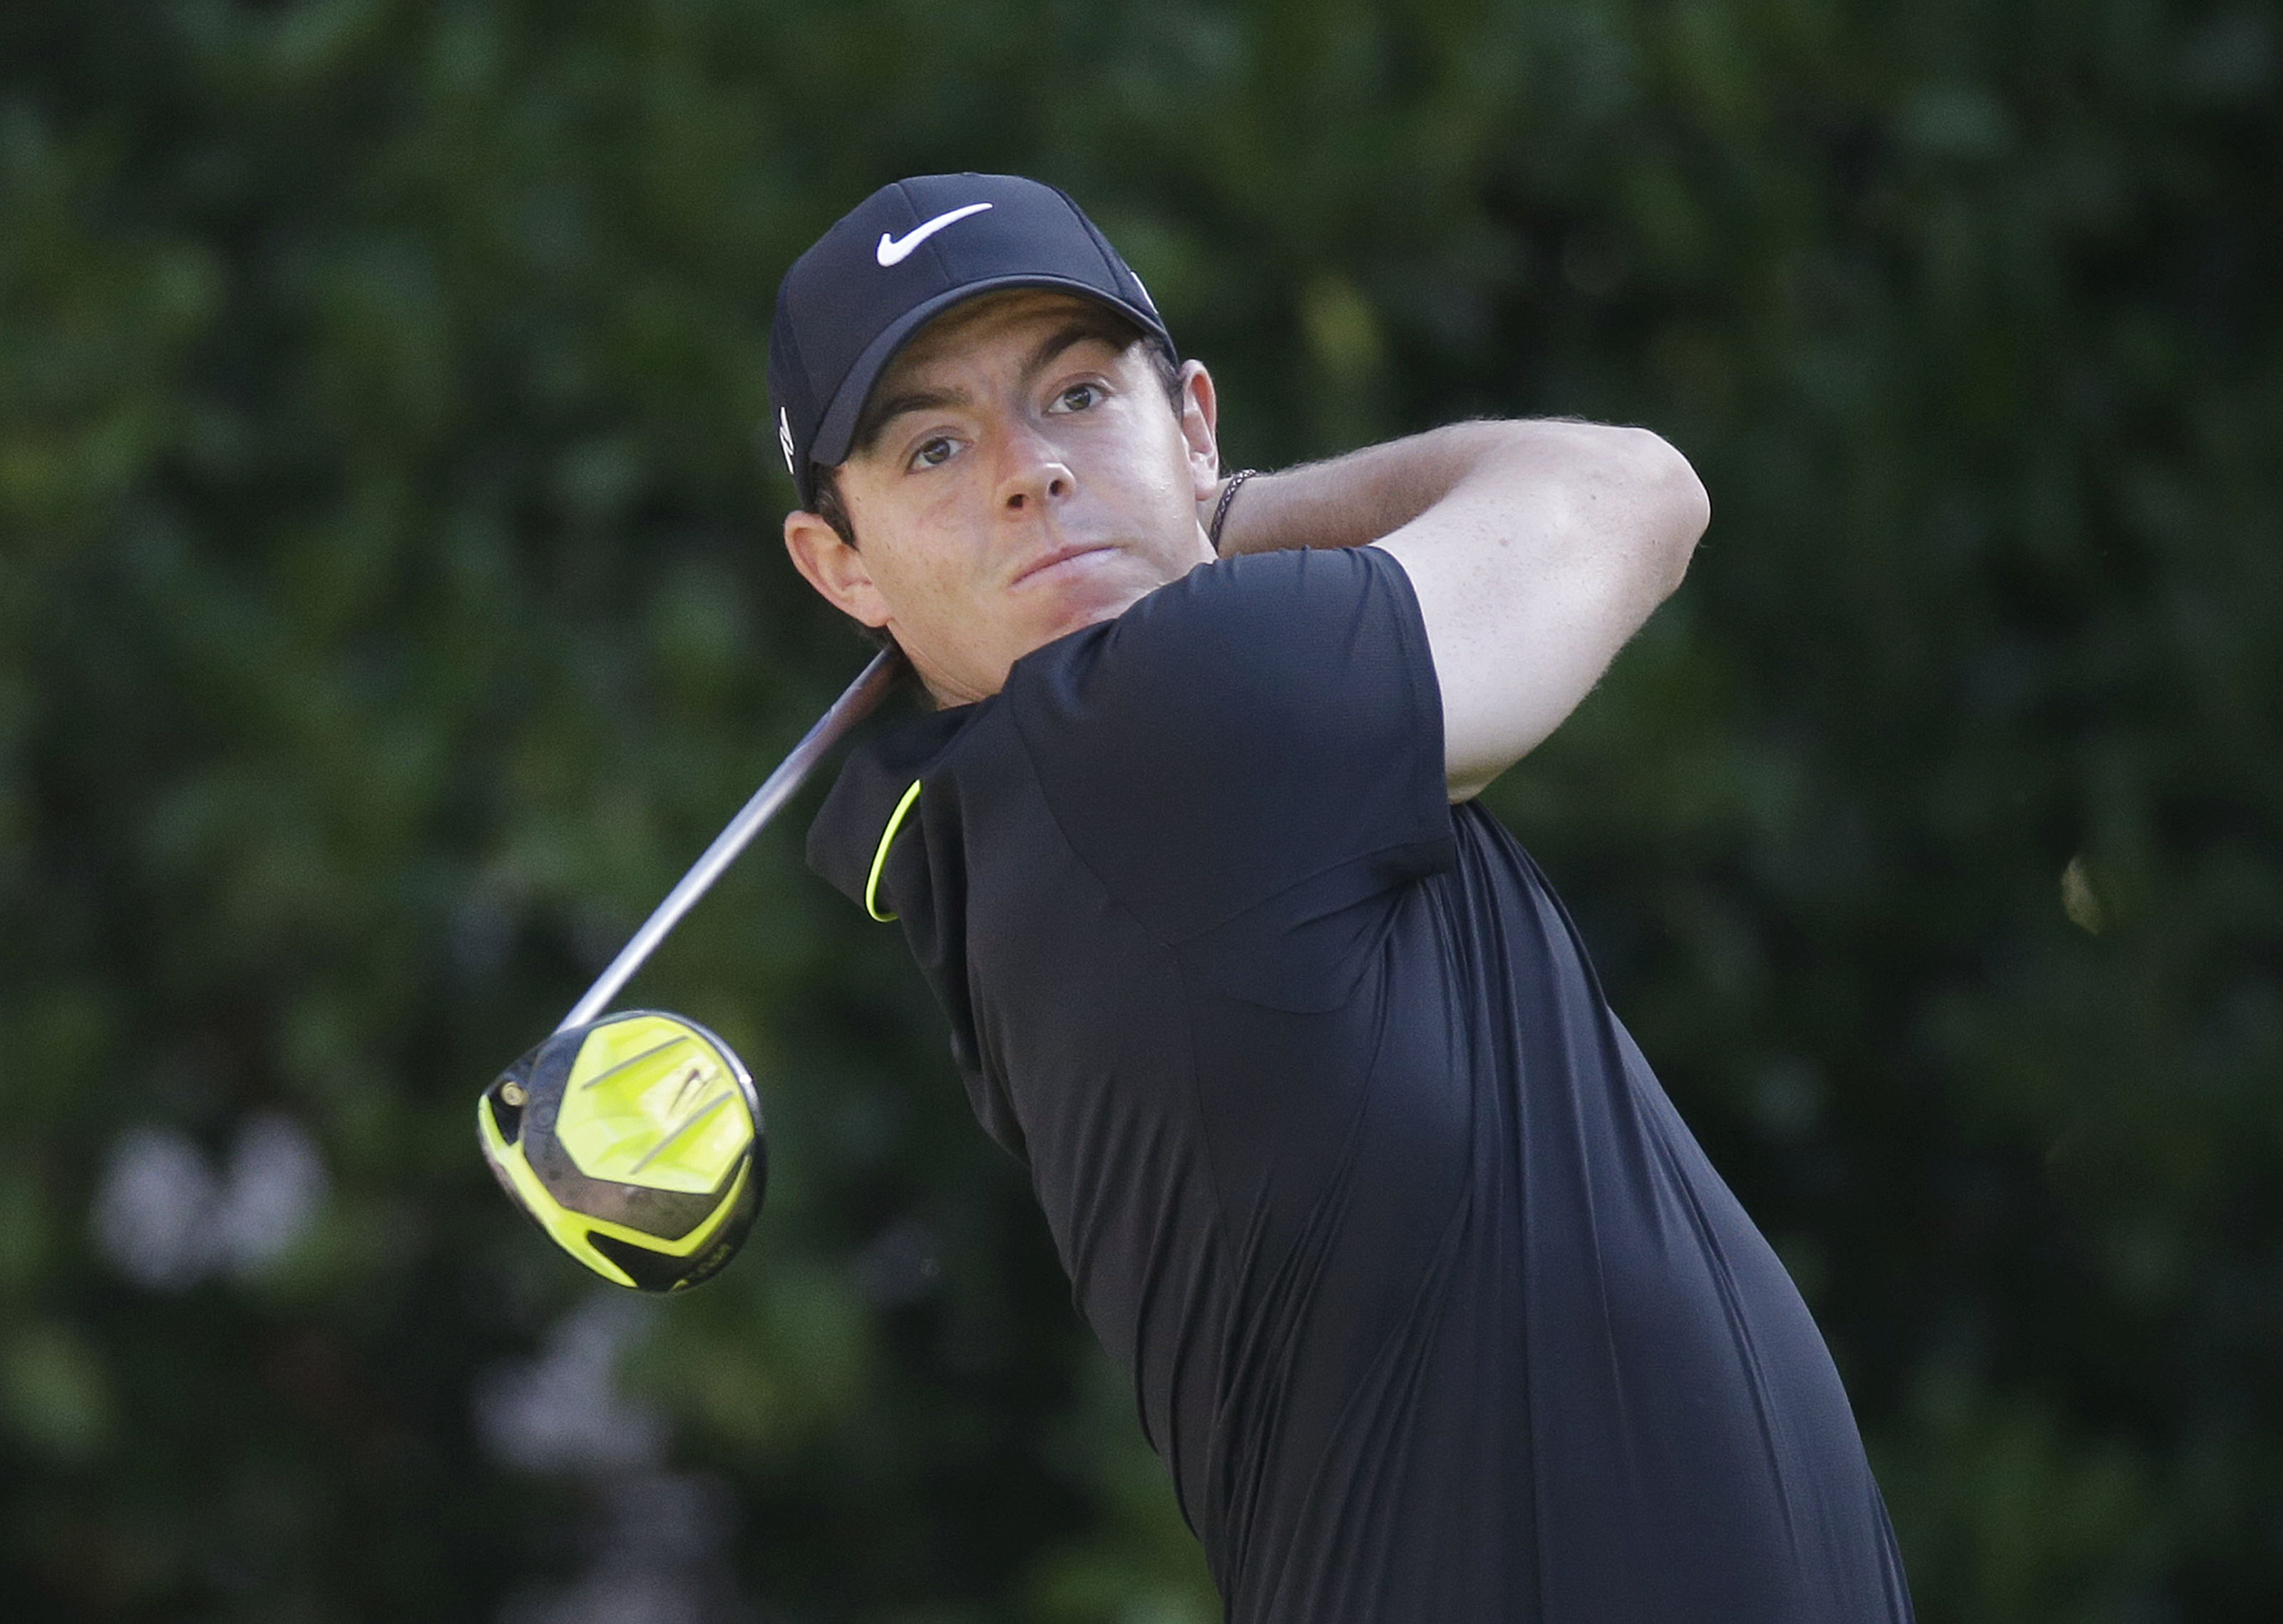 Rory McIlroy, of Northern Ireland, hits from the 10th tee during the first round of The Players Championship golf tournament Thursday, May 7, 2015, in Ponte Vedra Beach, Fla., Fla. (AP Photo/John Raoux)